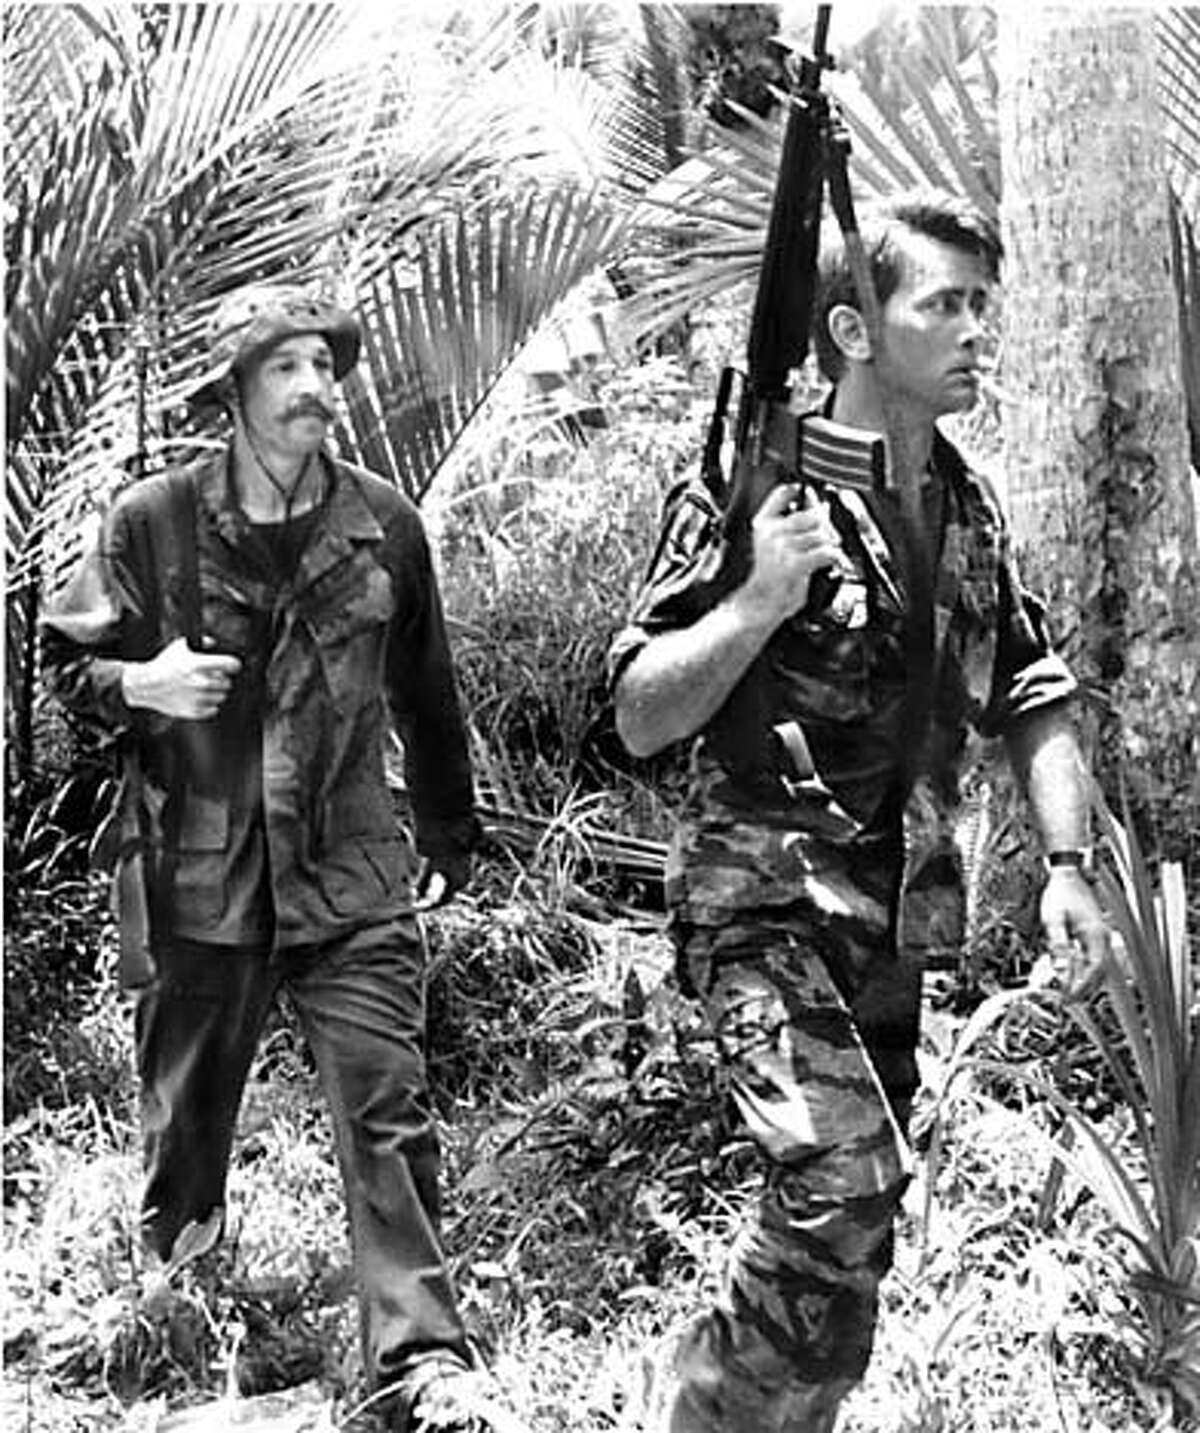 Capt. Willard (Martin Sheen), right, and Chef (Frederic Forrest) move cautiously through the Vietnamese jungle, in search of fresh fruit for their dinner in